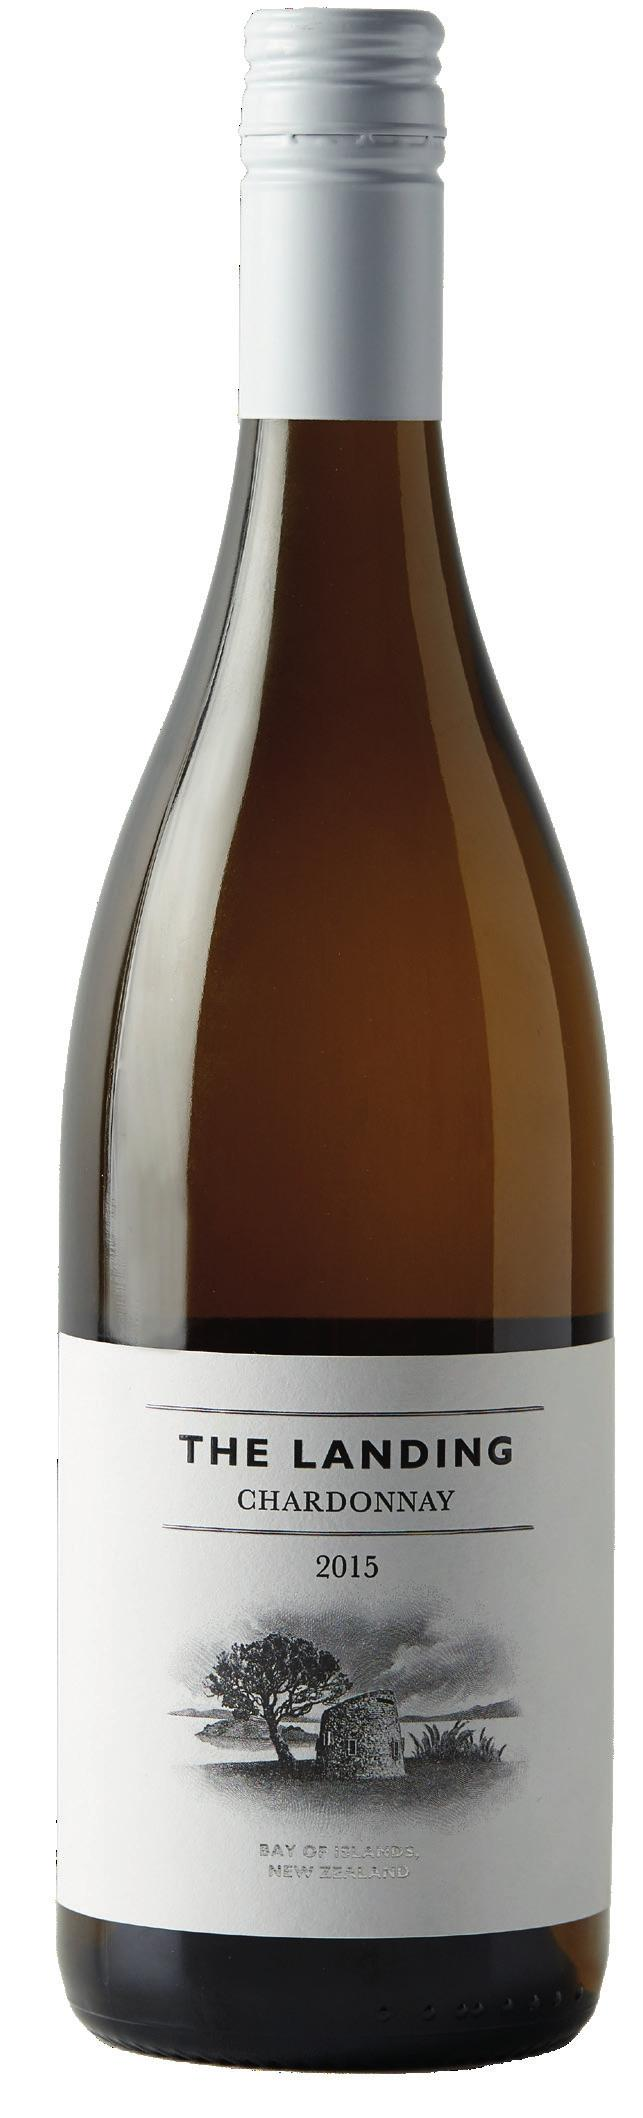 THE LANDING CHARDONNAY 2015 Grown on the coastal slopes overlooking the Bay of Islands, the 2015 Chardonnay is an expression of citrus, stonefruit and fine oak flavours, with a long and delicious